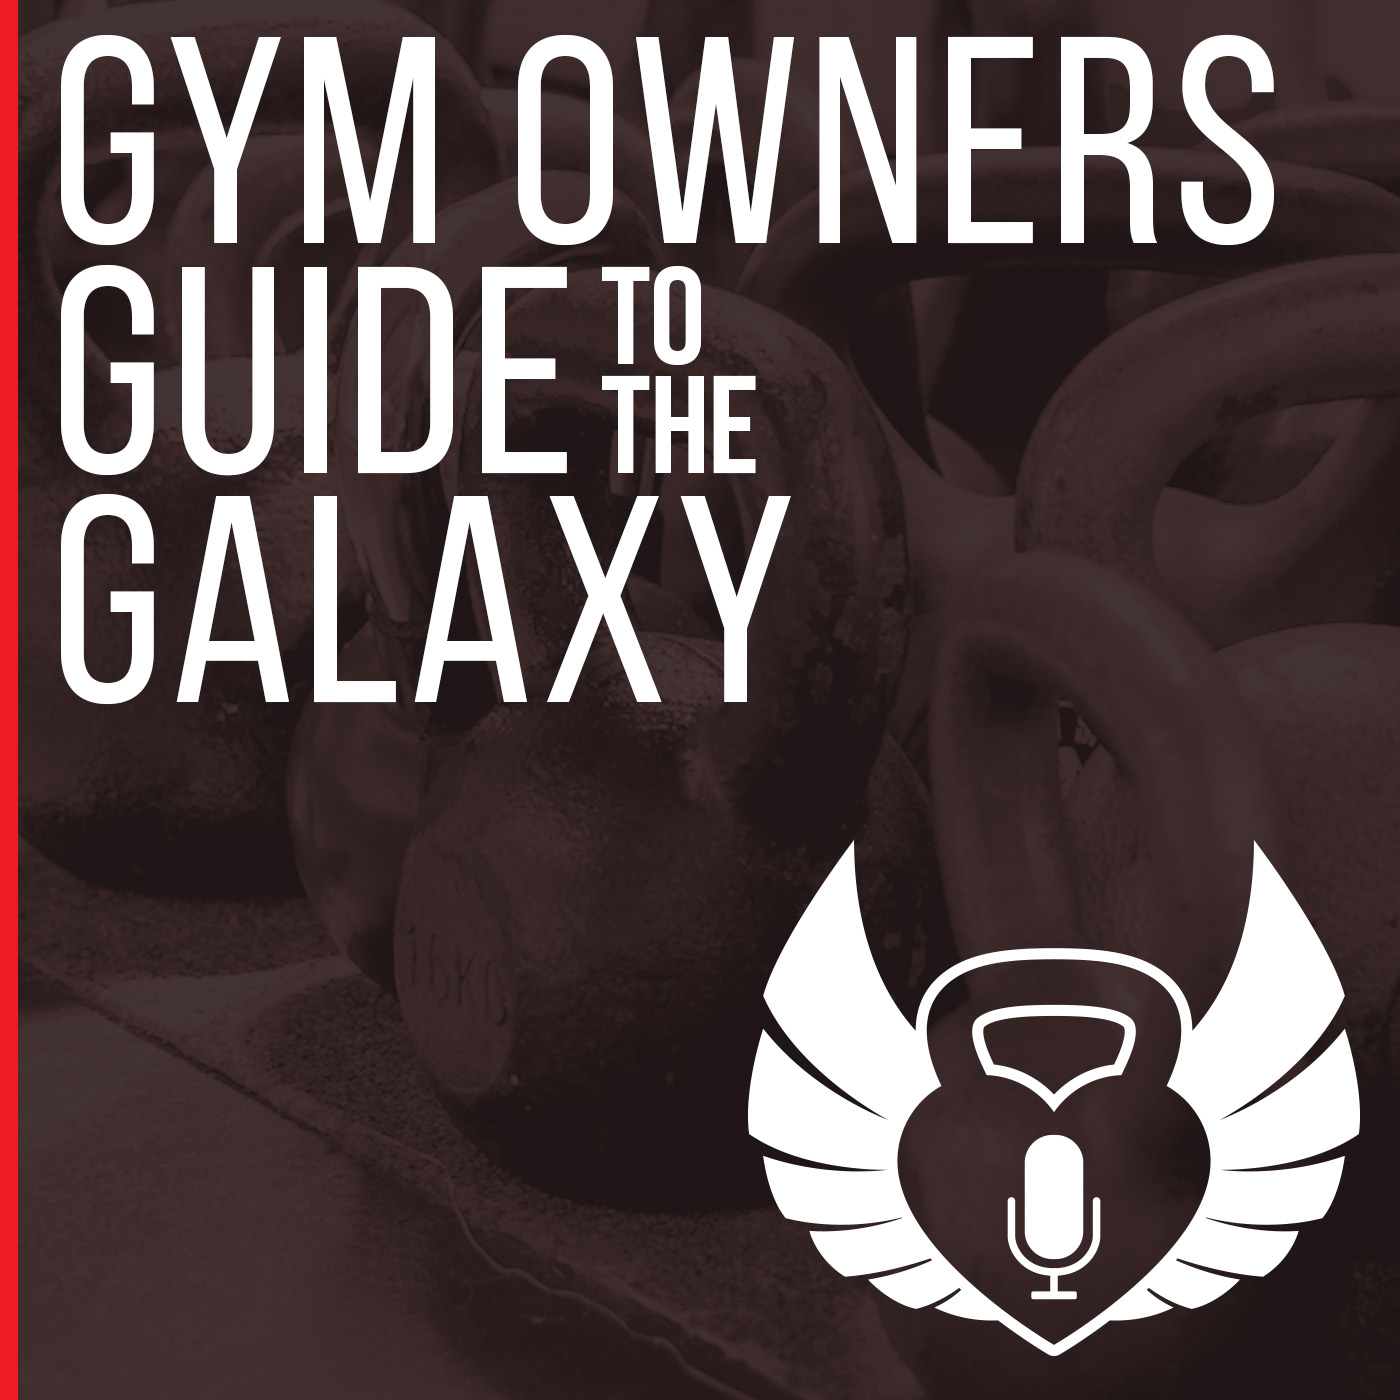 The Gym Owners Guide to the Galaxy